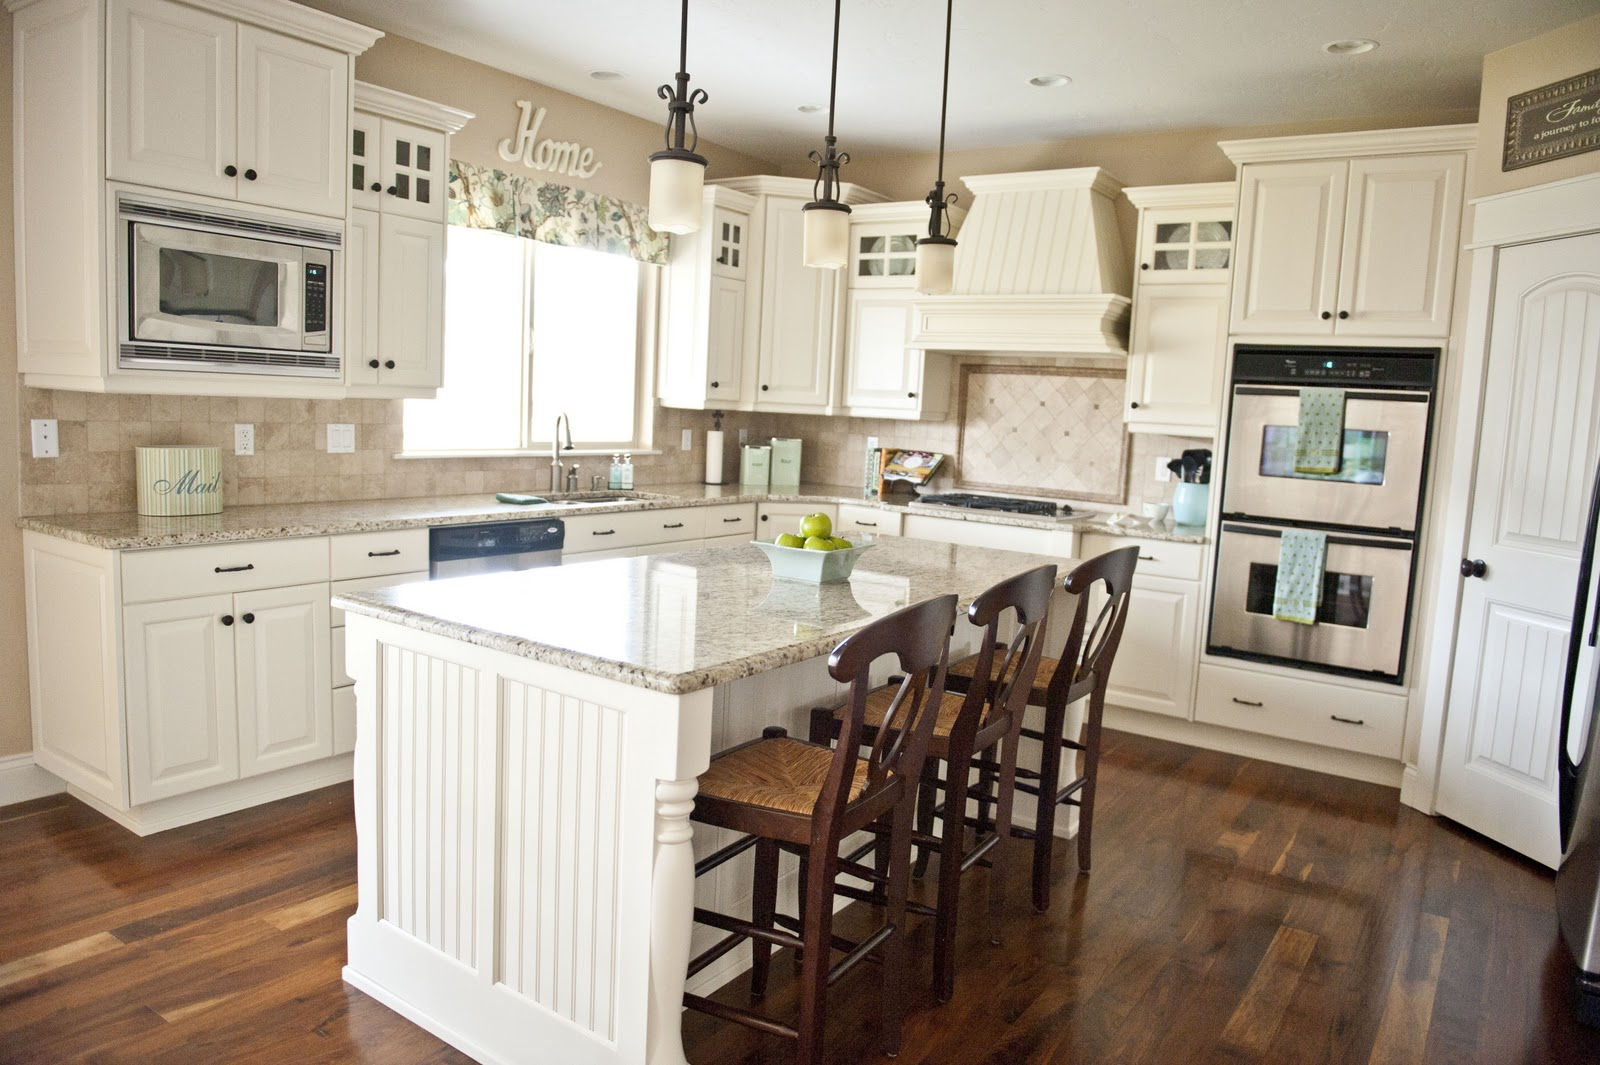 Guest post sita from the family room design studio for Painting wooden kitchen cabinets white